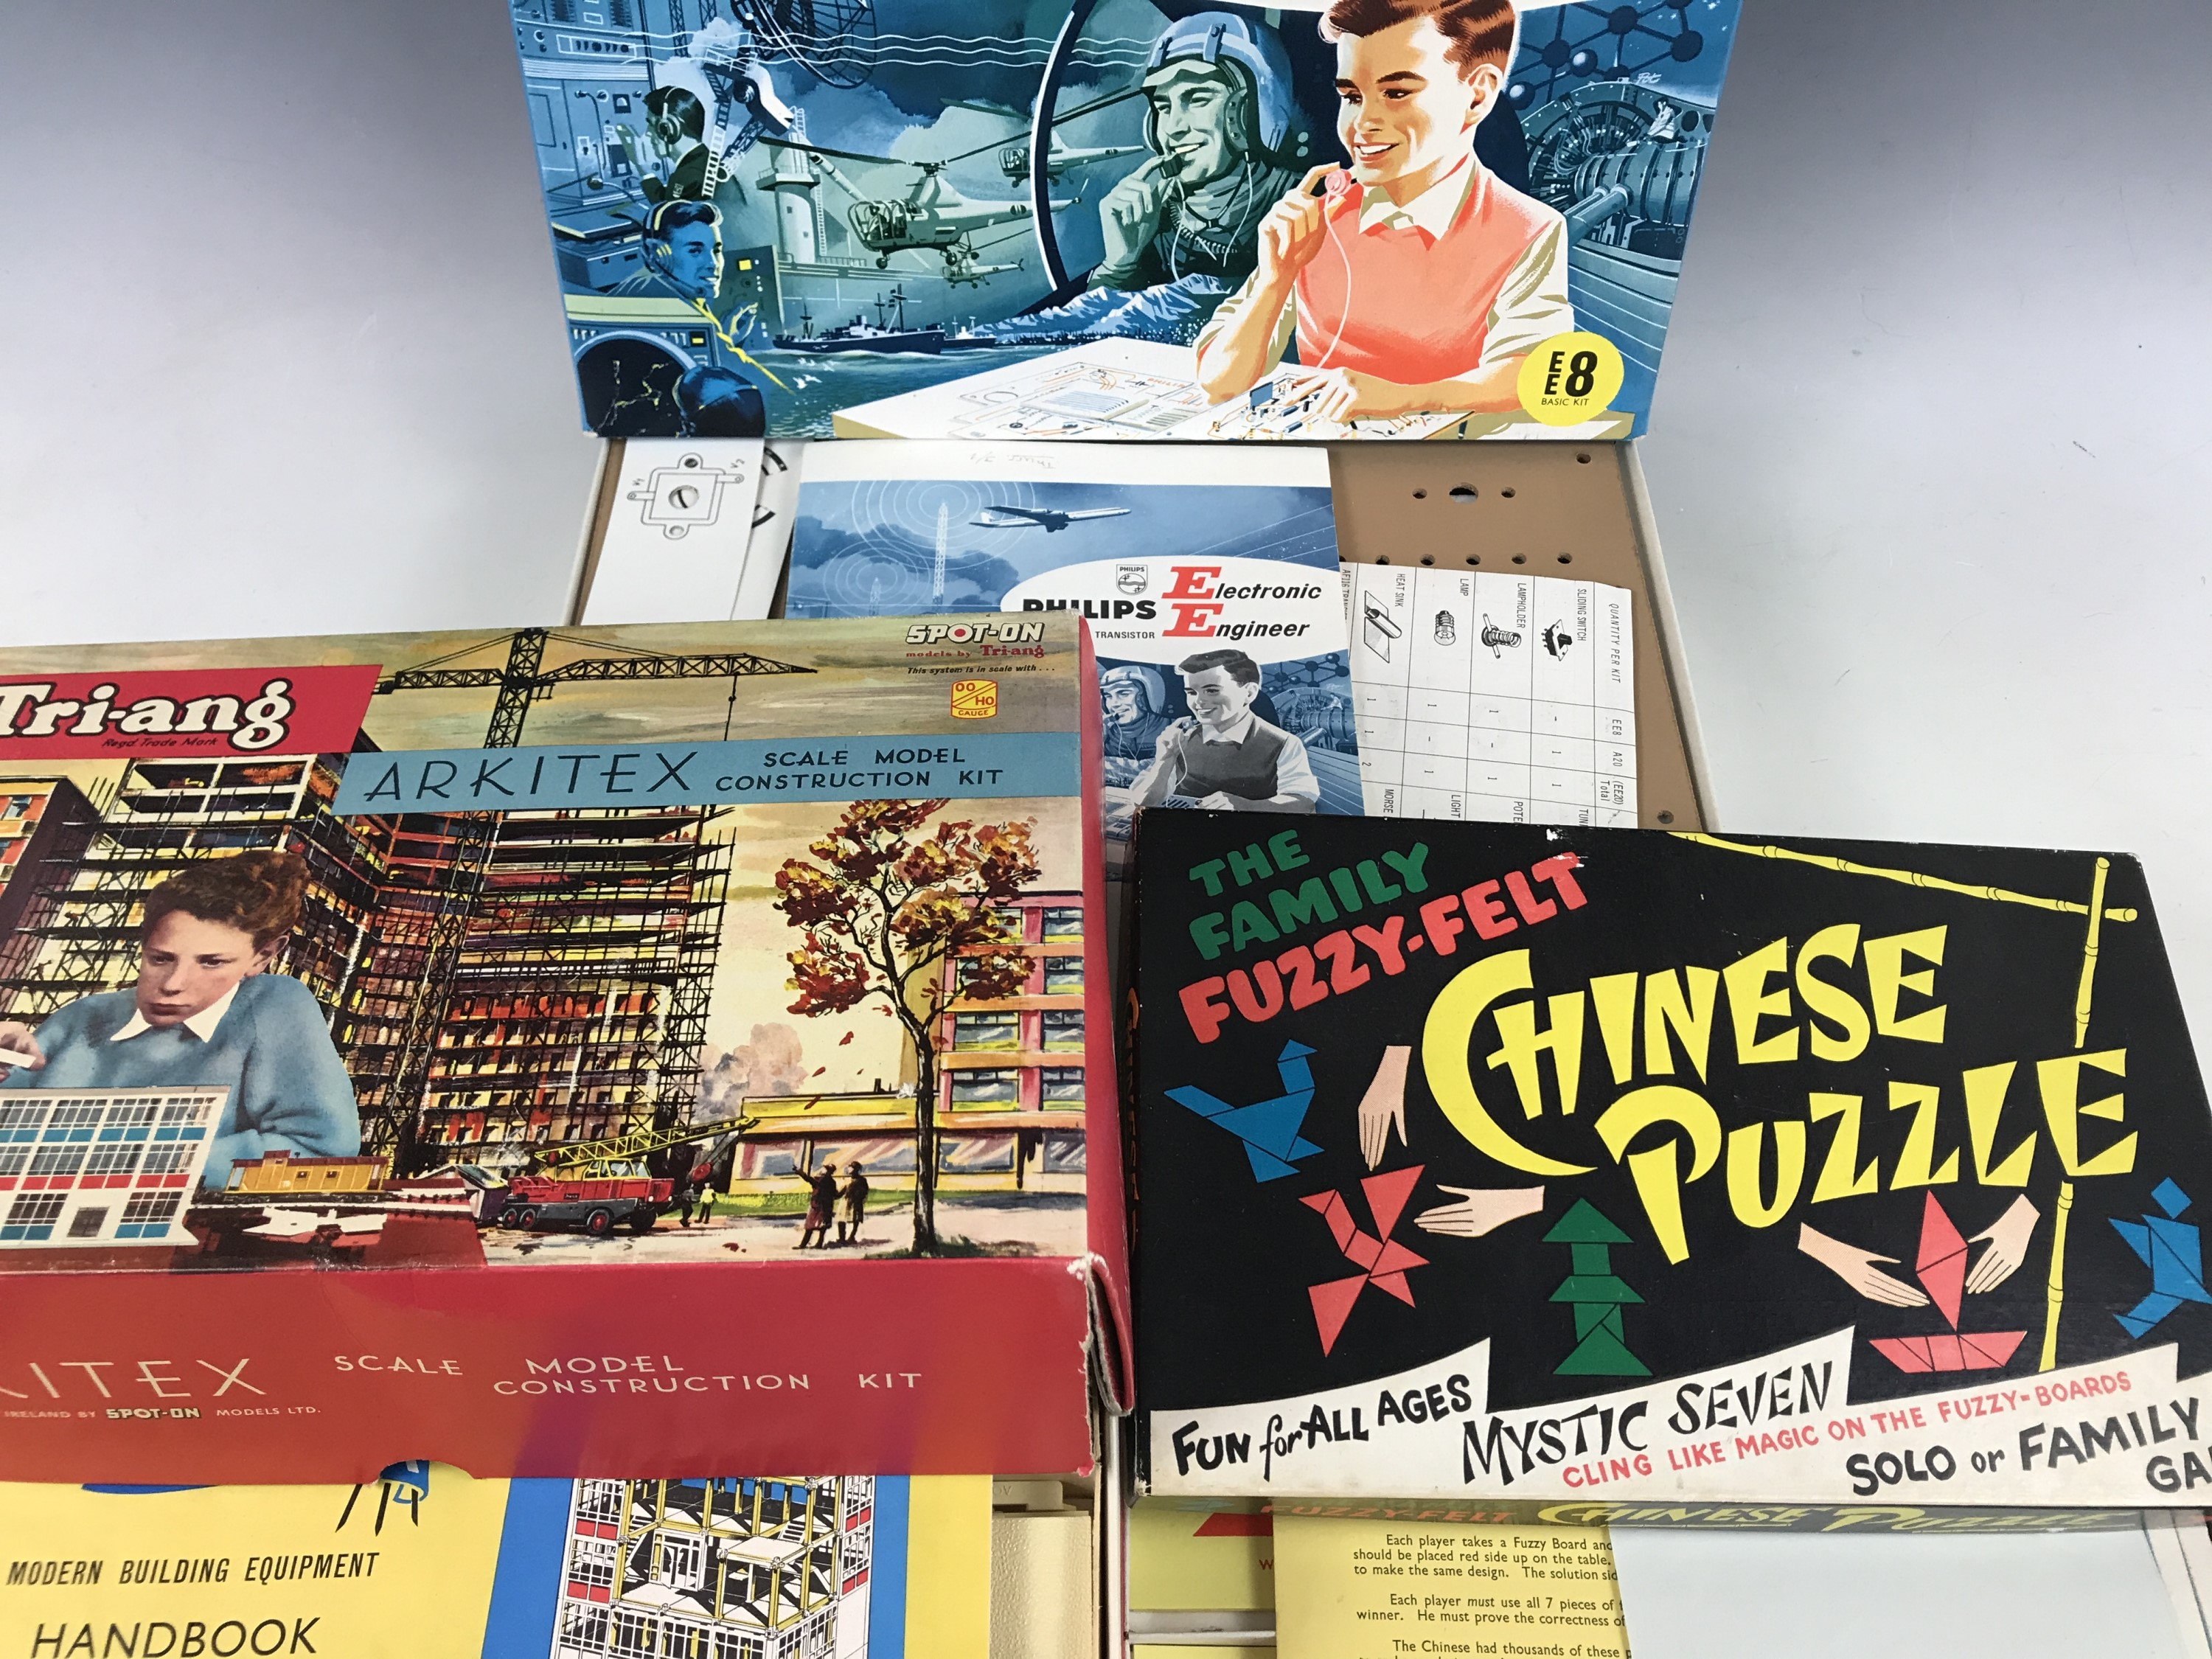 Lot 56 - Three 1950s / 1960s board games, including a Philips Electronic Engineer EE8 Basic Kit, a Tri-ang OO